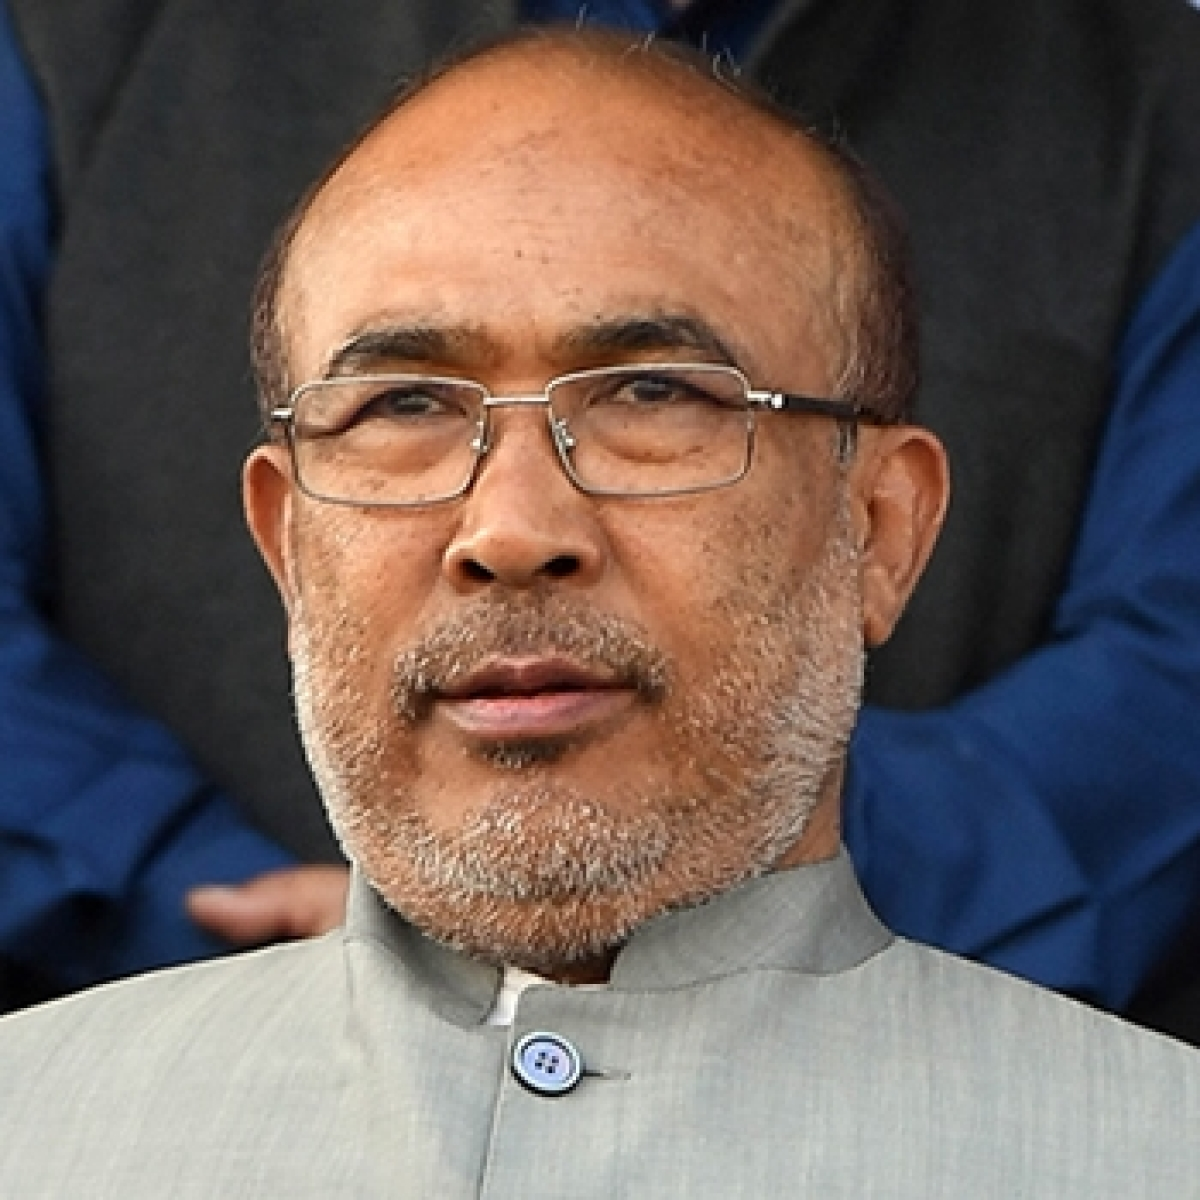 Manipur CM N Biren Singh clarified government will take all possible steps to ease issues on healthcare benefits